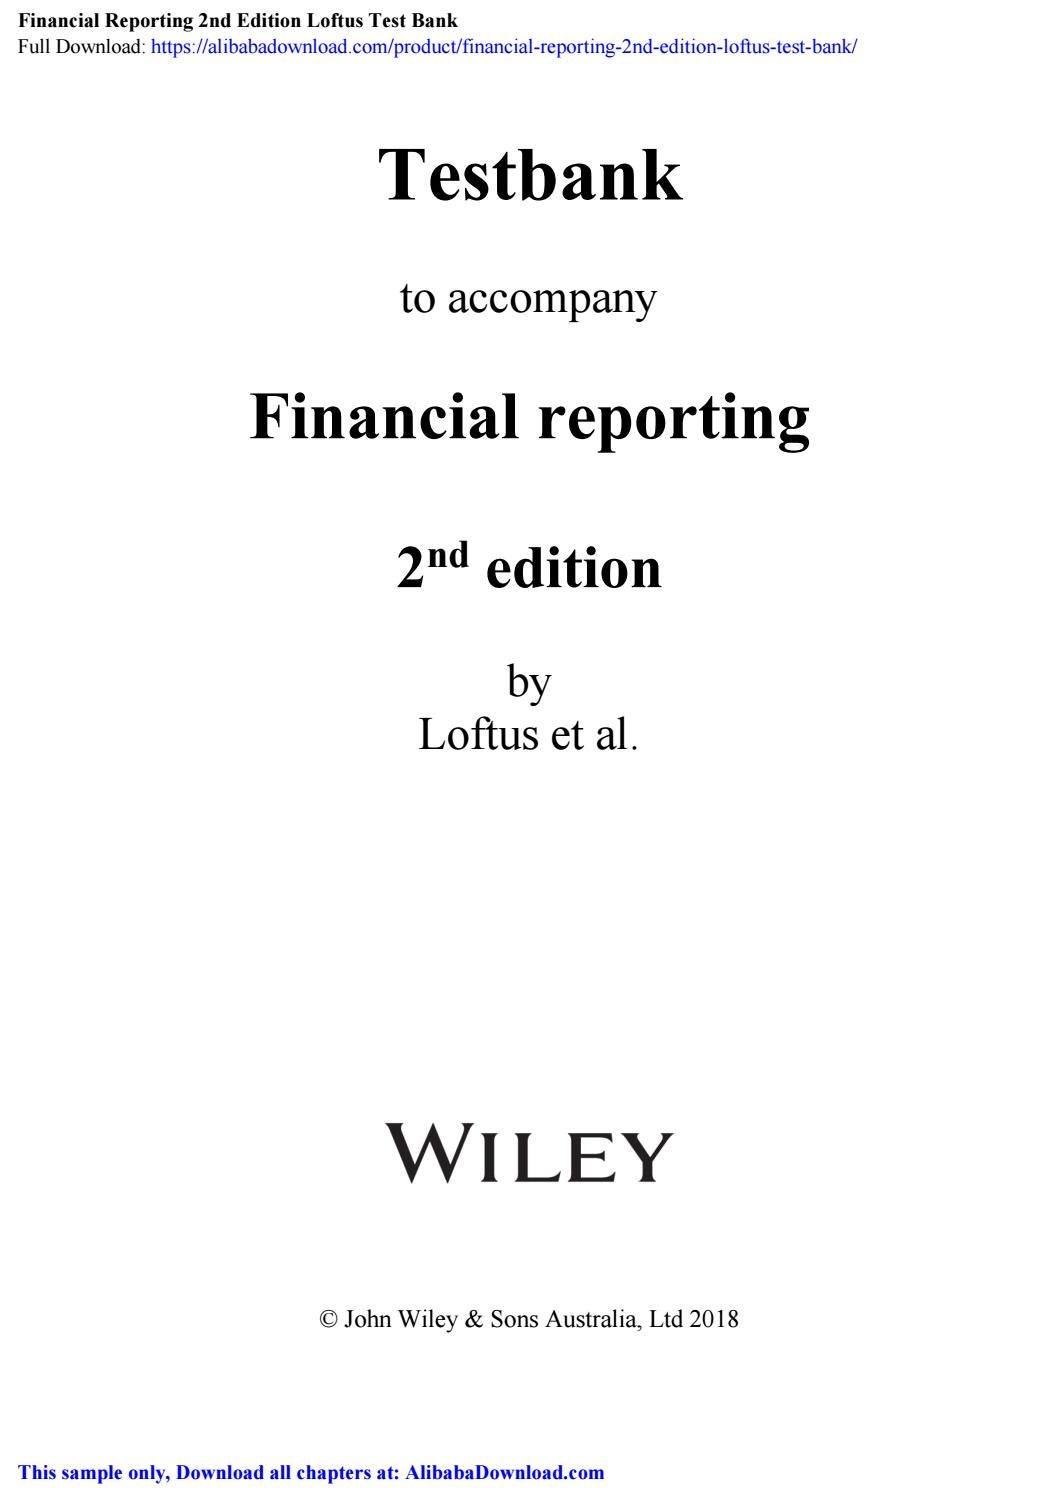 Financial Reporting 2nd Edition Loftus Test Bank by Martha